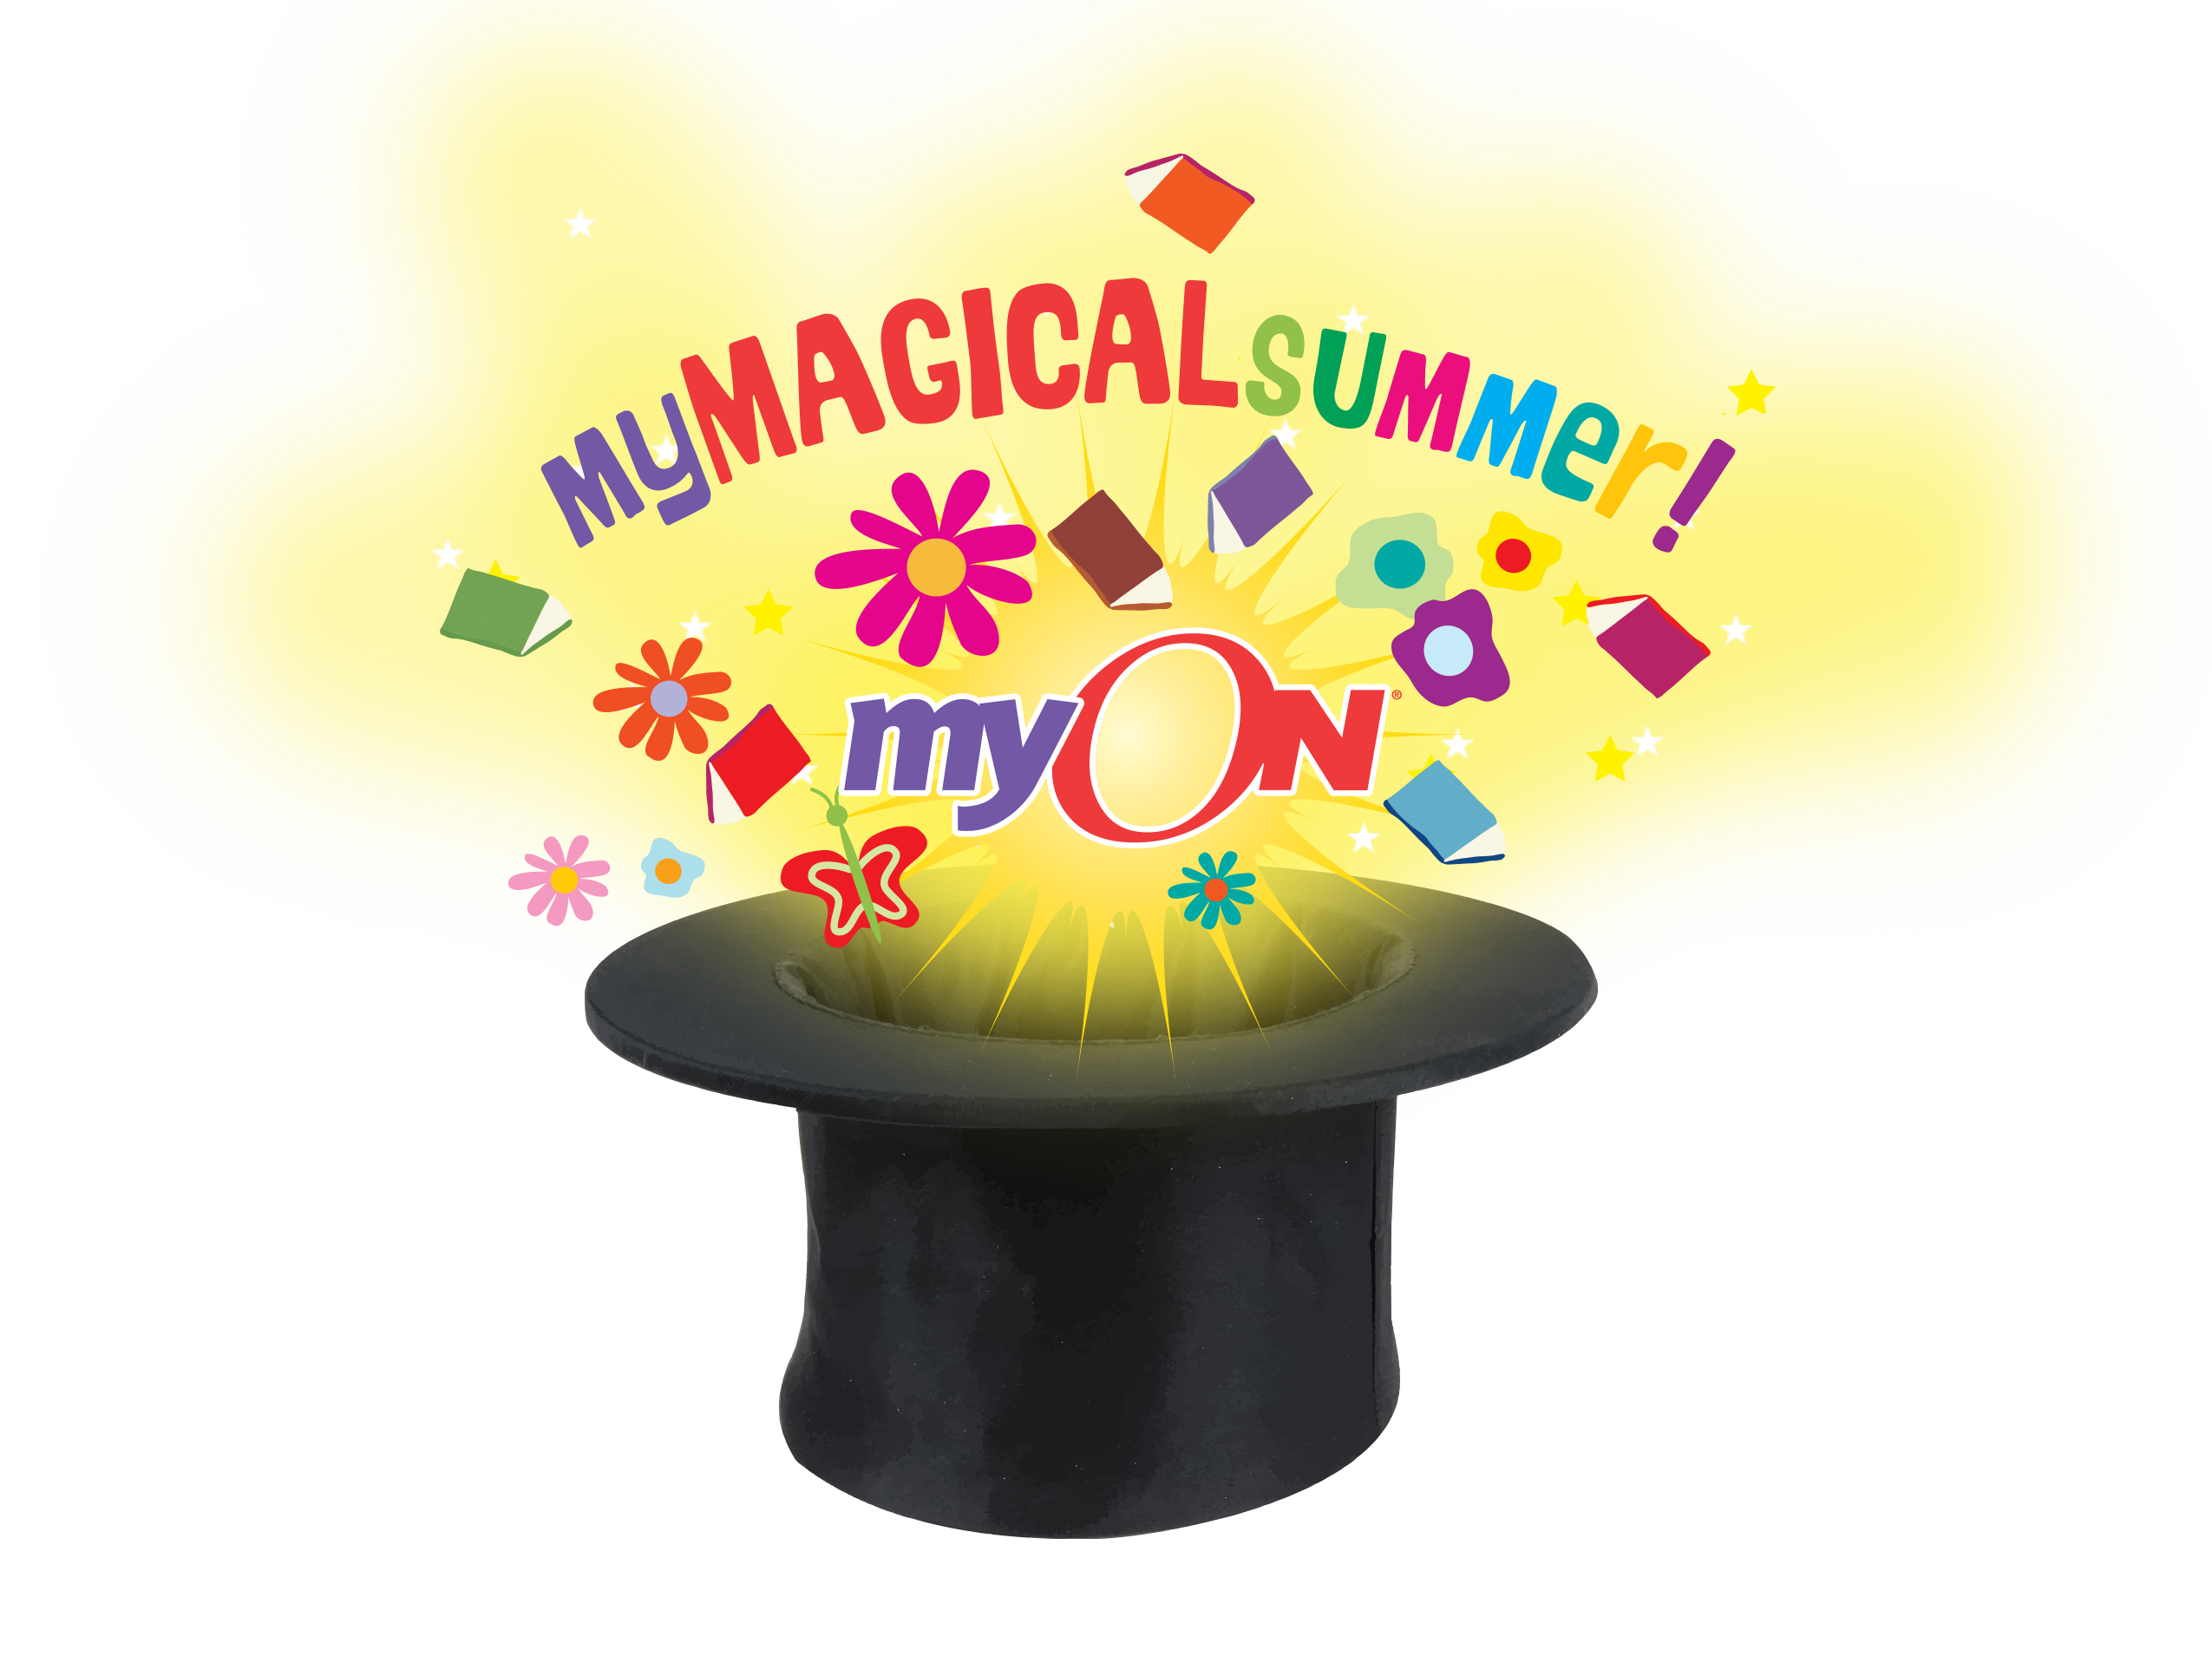 MYMAGICAL SUMMER MYON